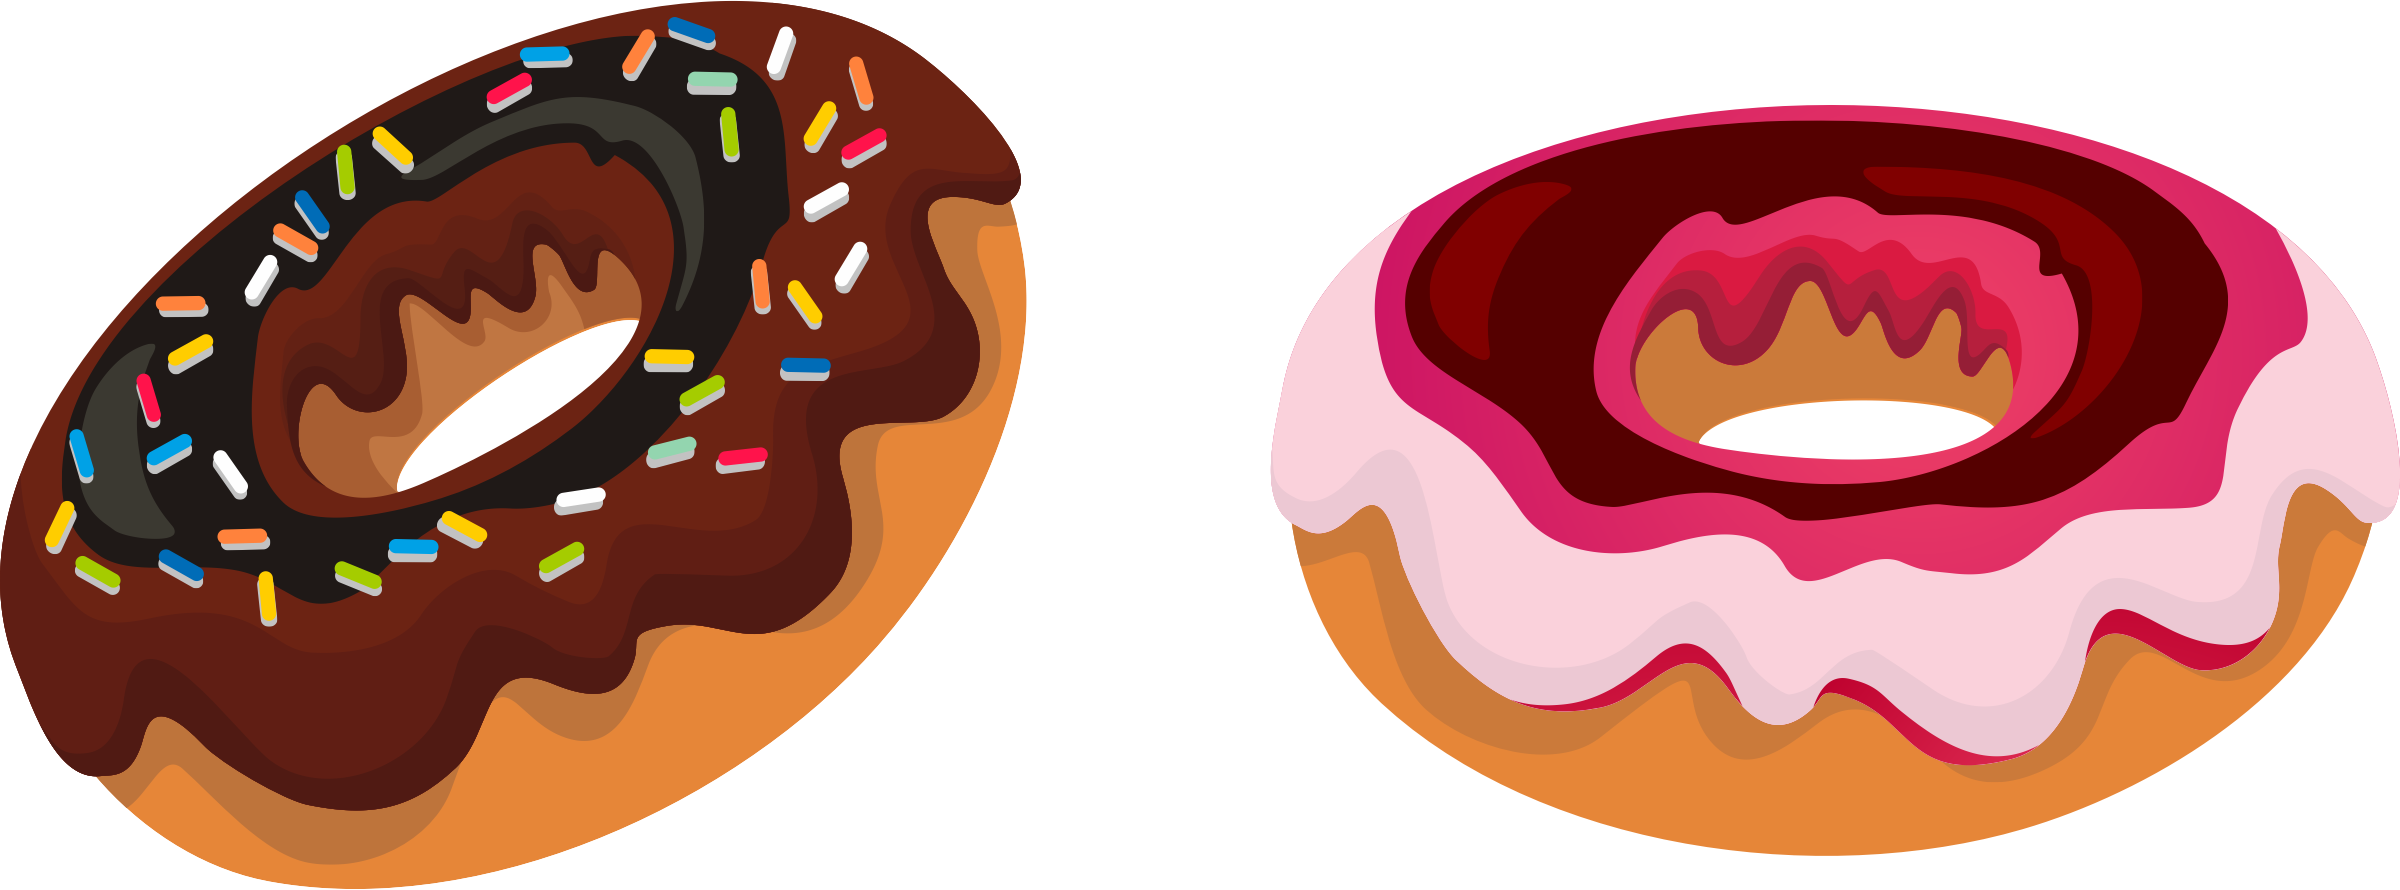 Donut png clipart. Collection of high